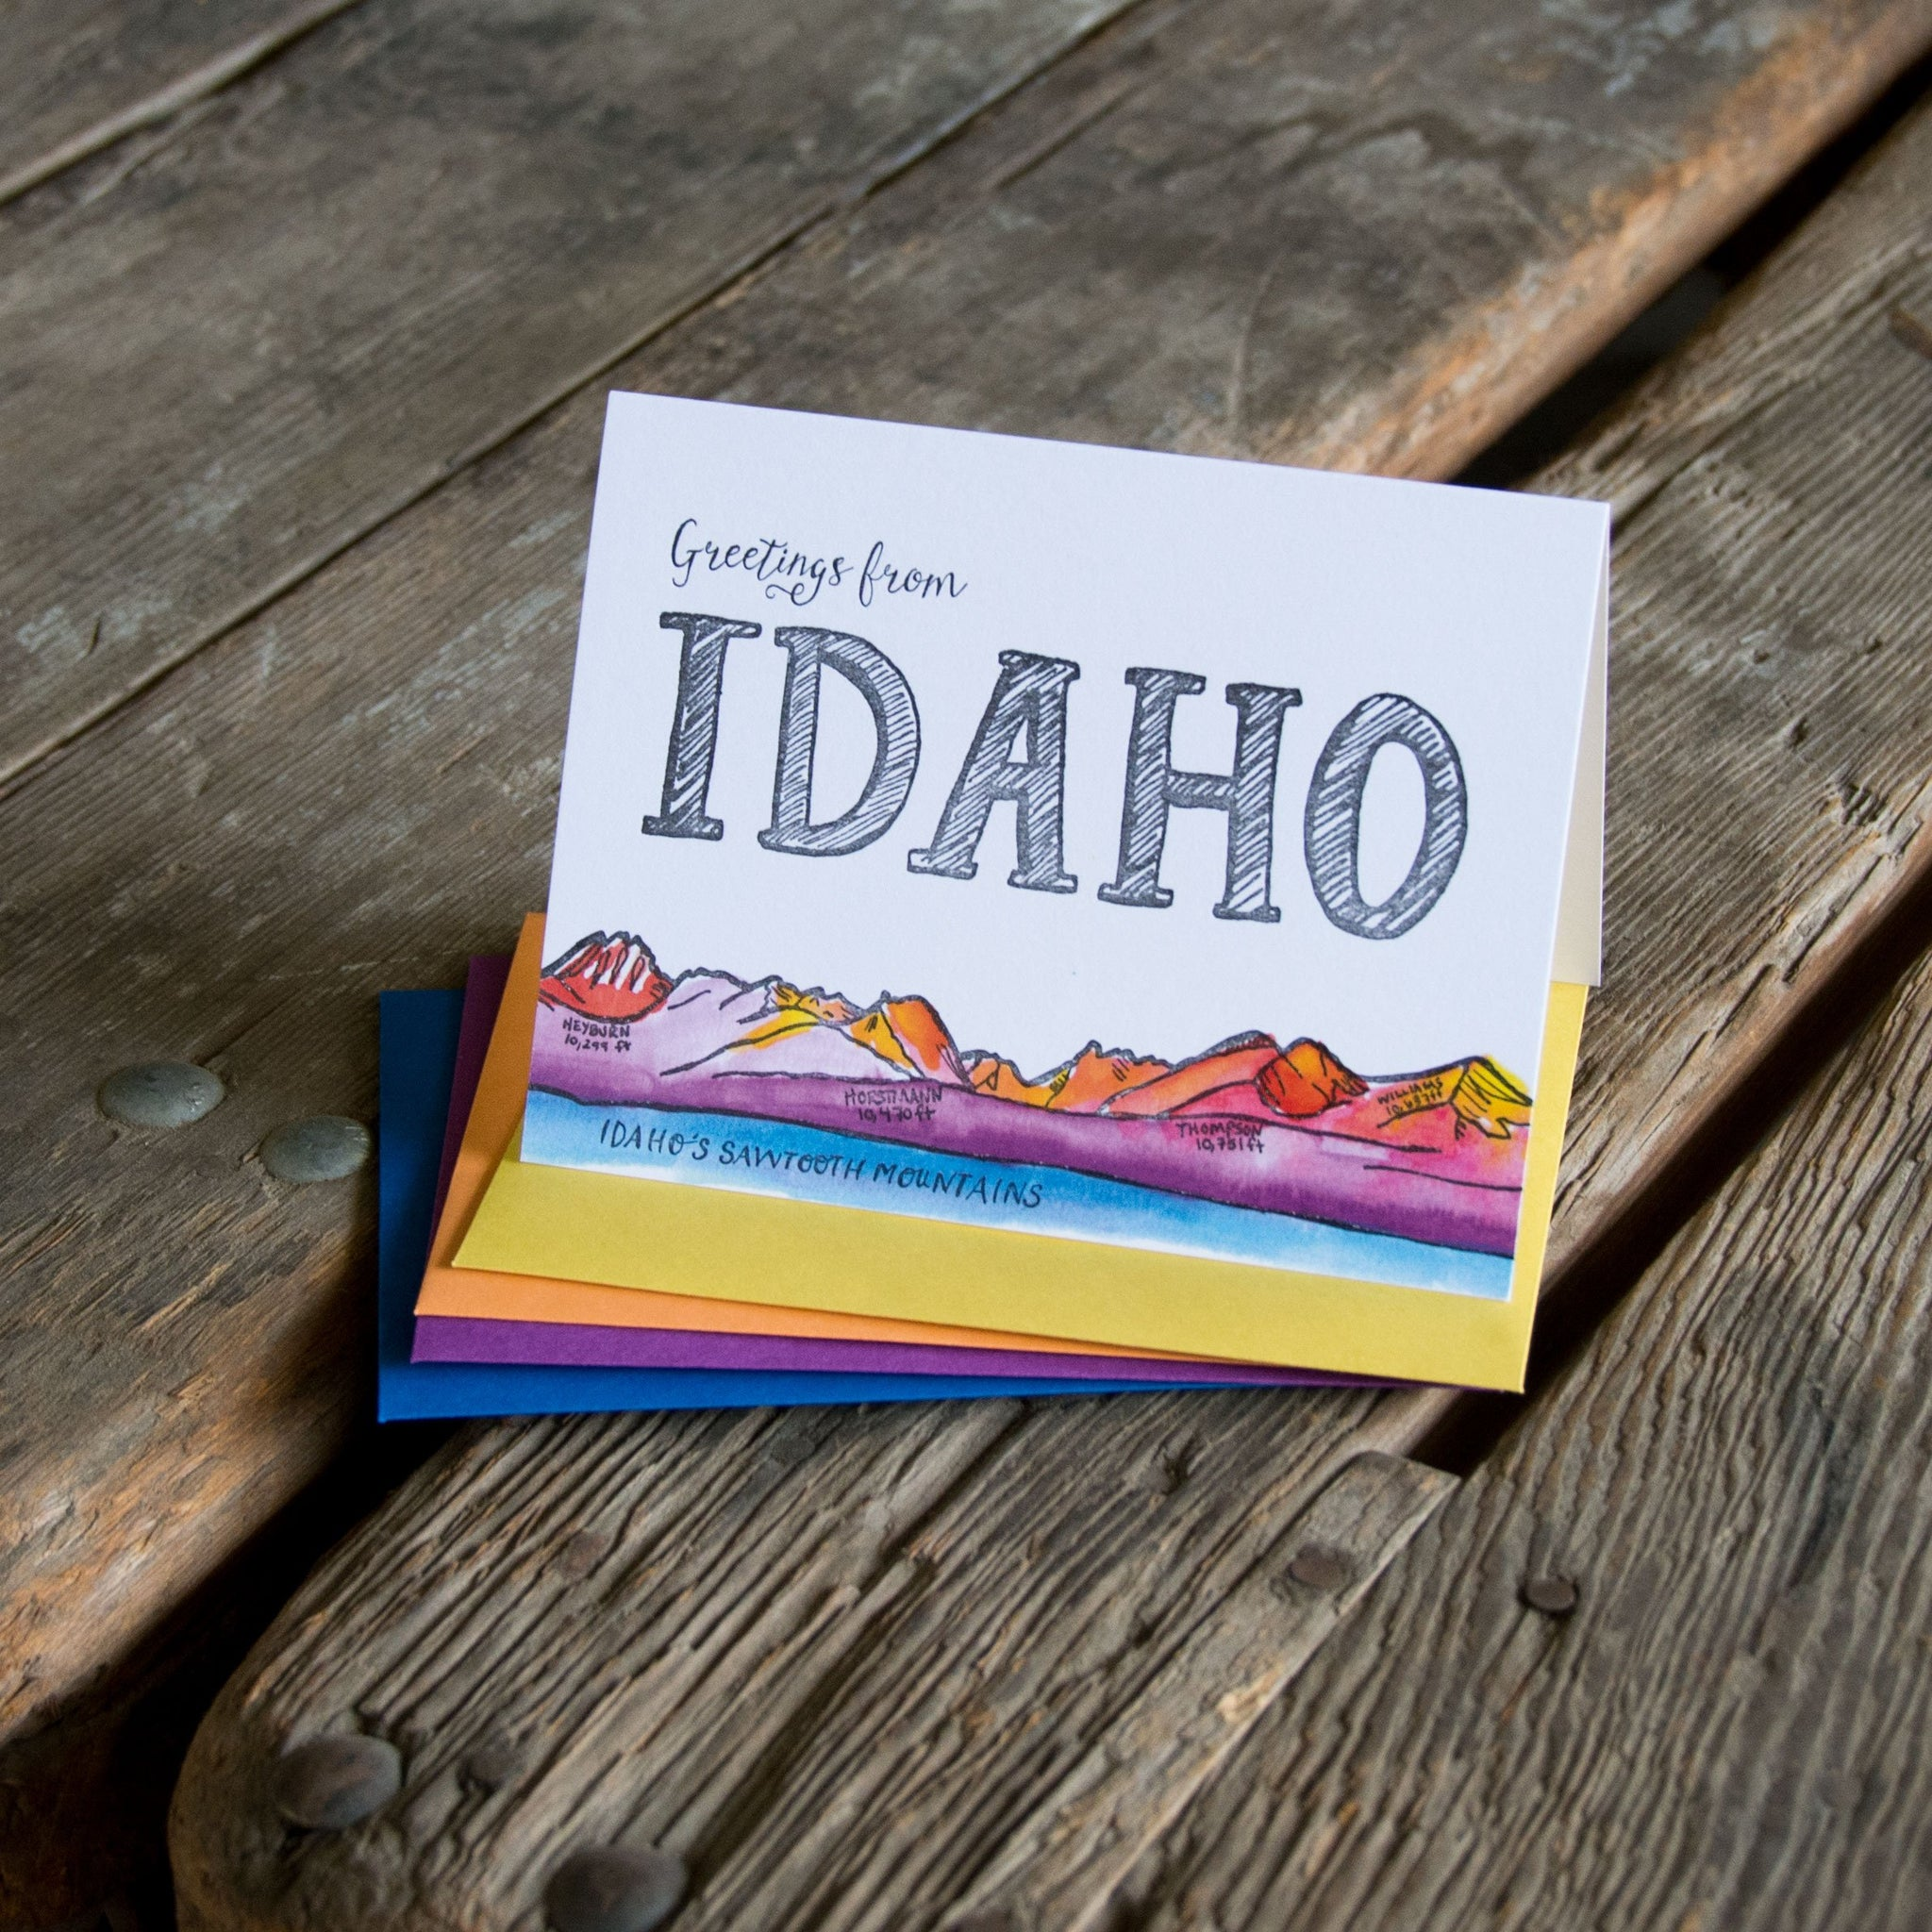 Greetings from Idaho, letterpress + watercolor card. Eco friendly